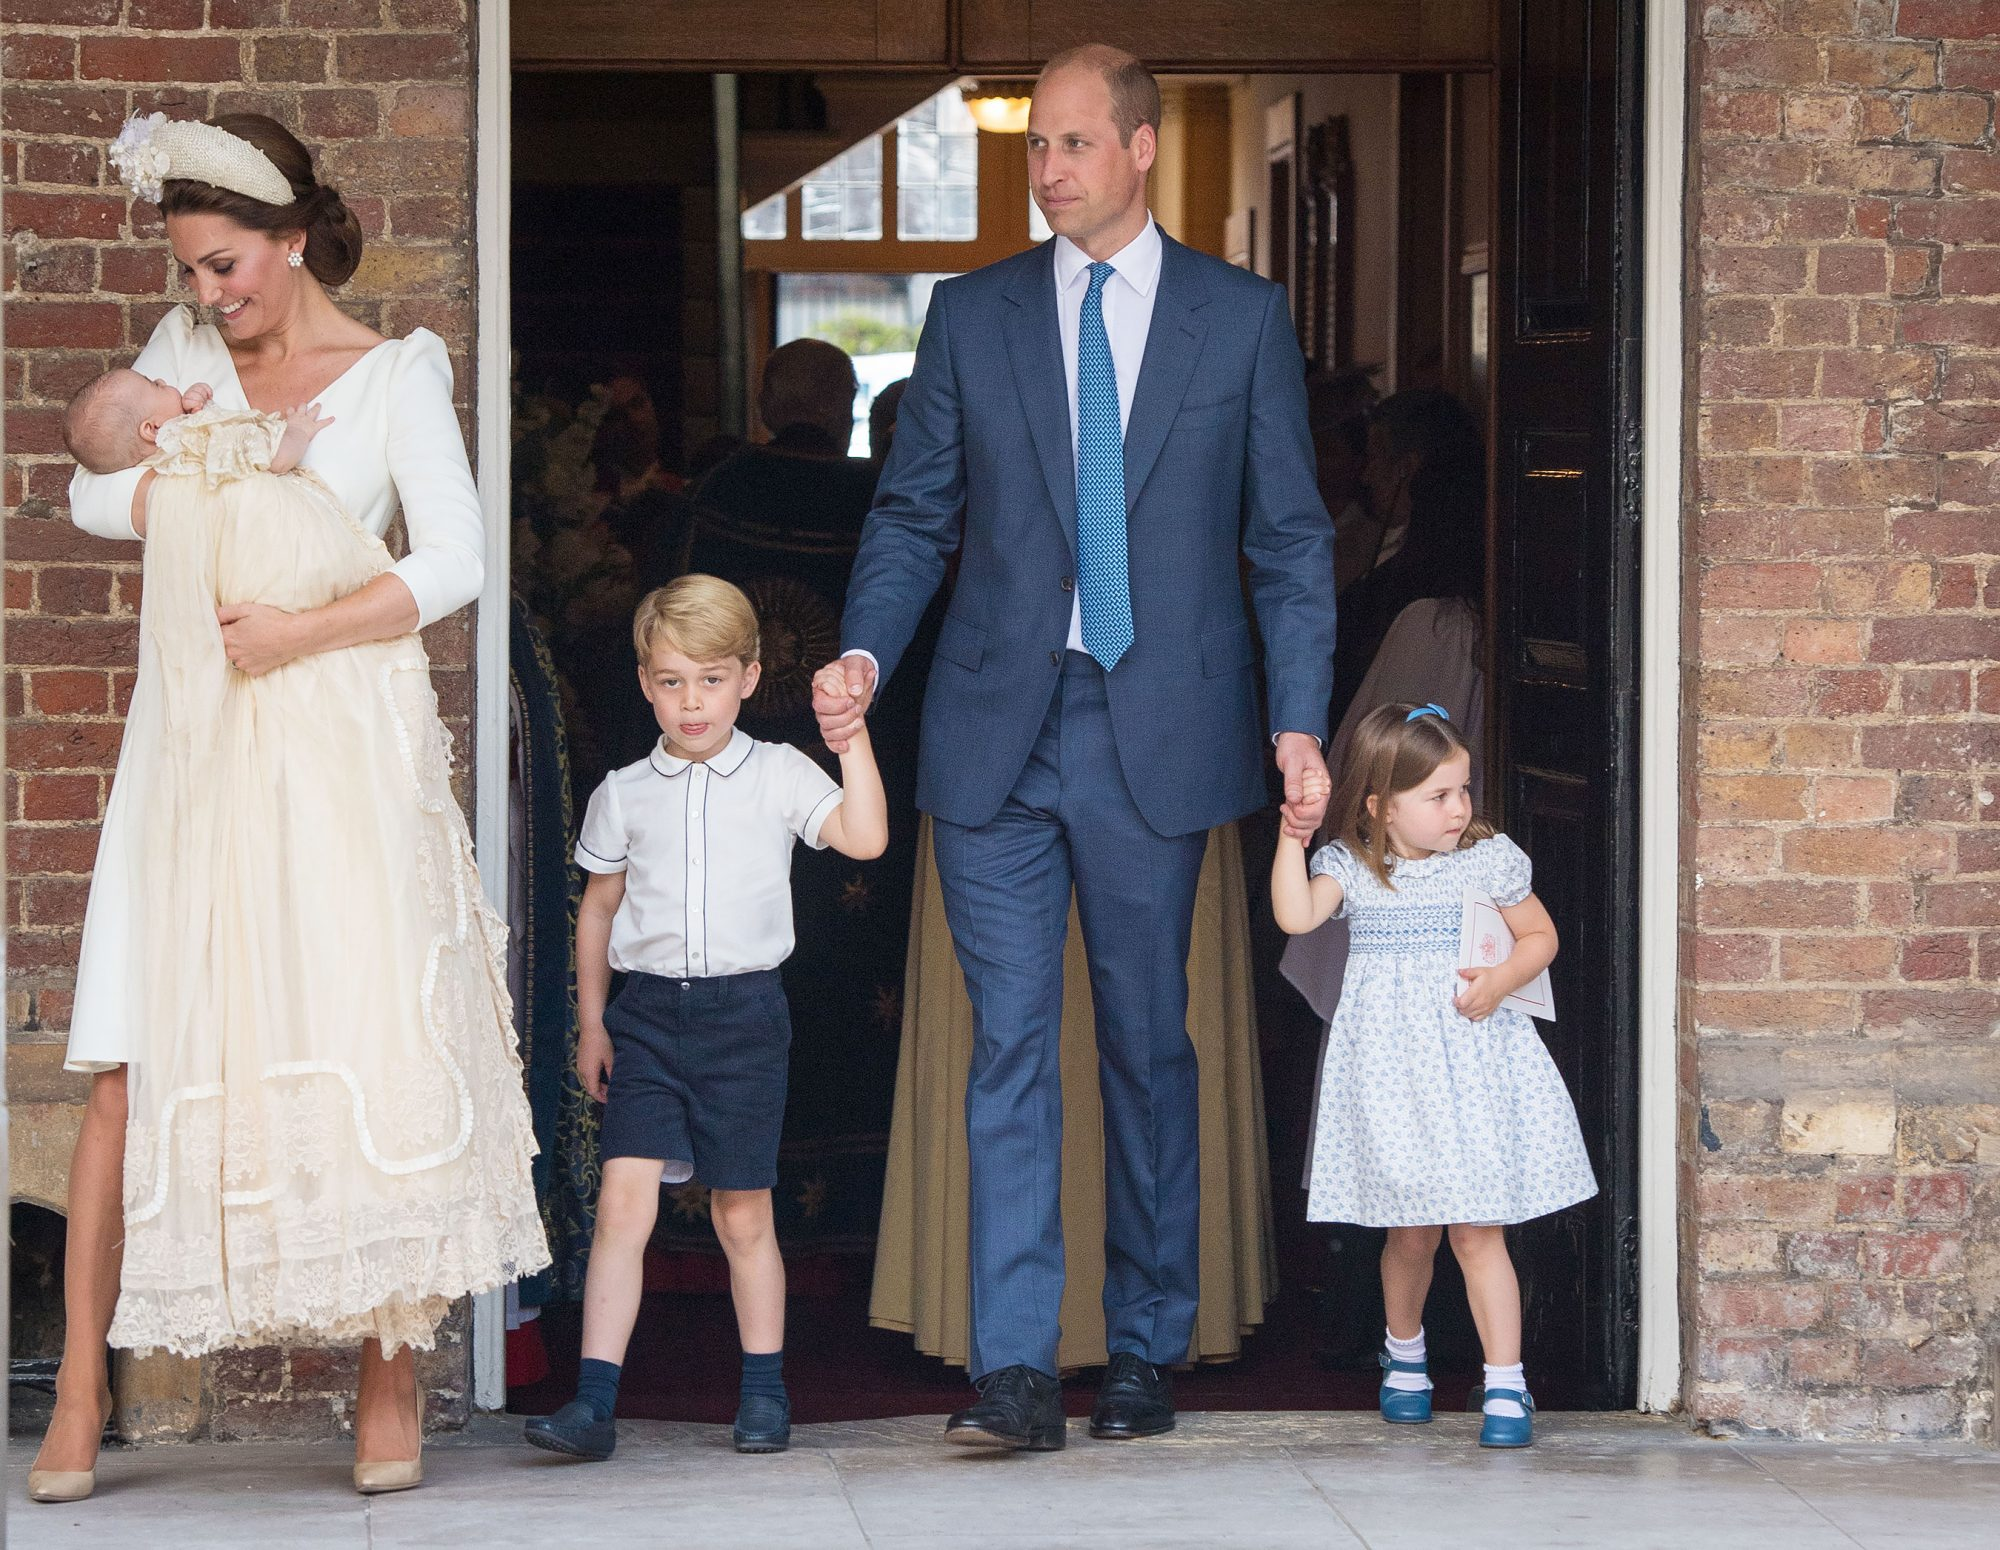 Kate Middleton Says She's 'So Bad' at This Skill: 'I Have to Make Sure My Children Are Better!' louis-8